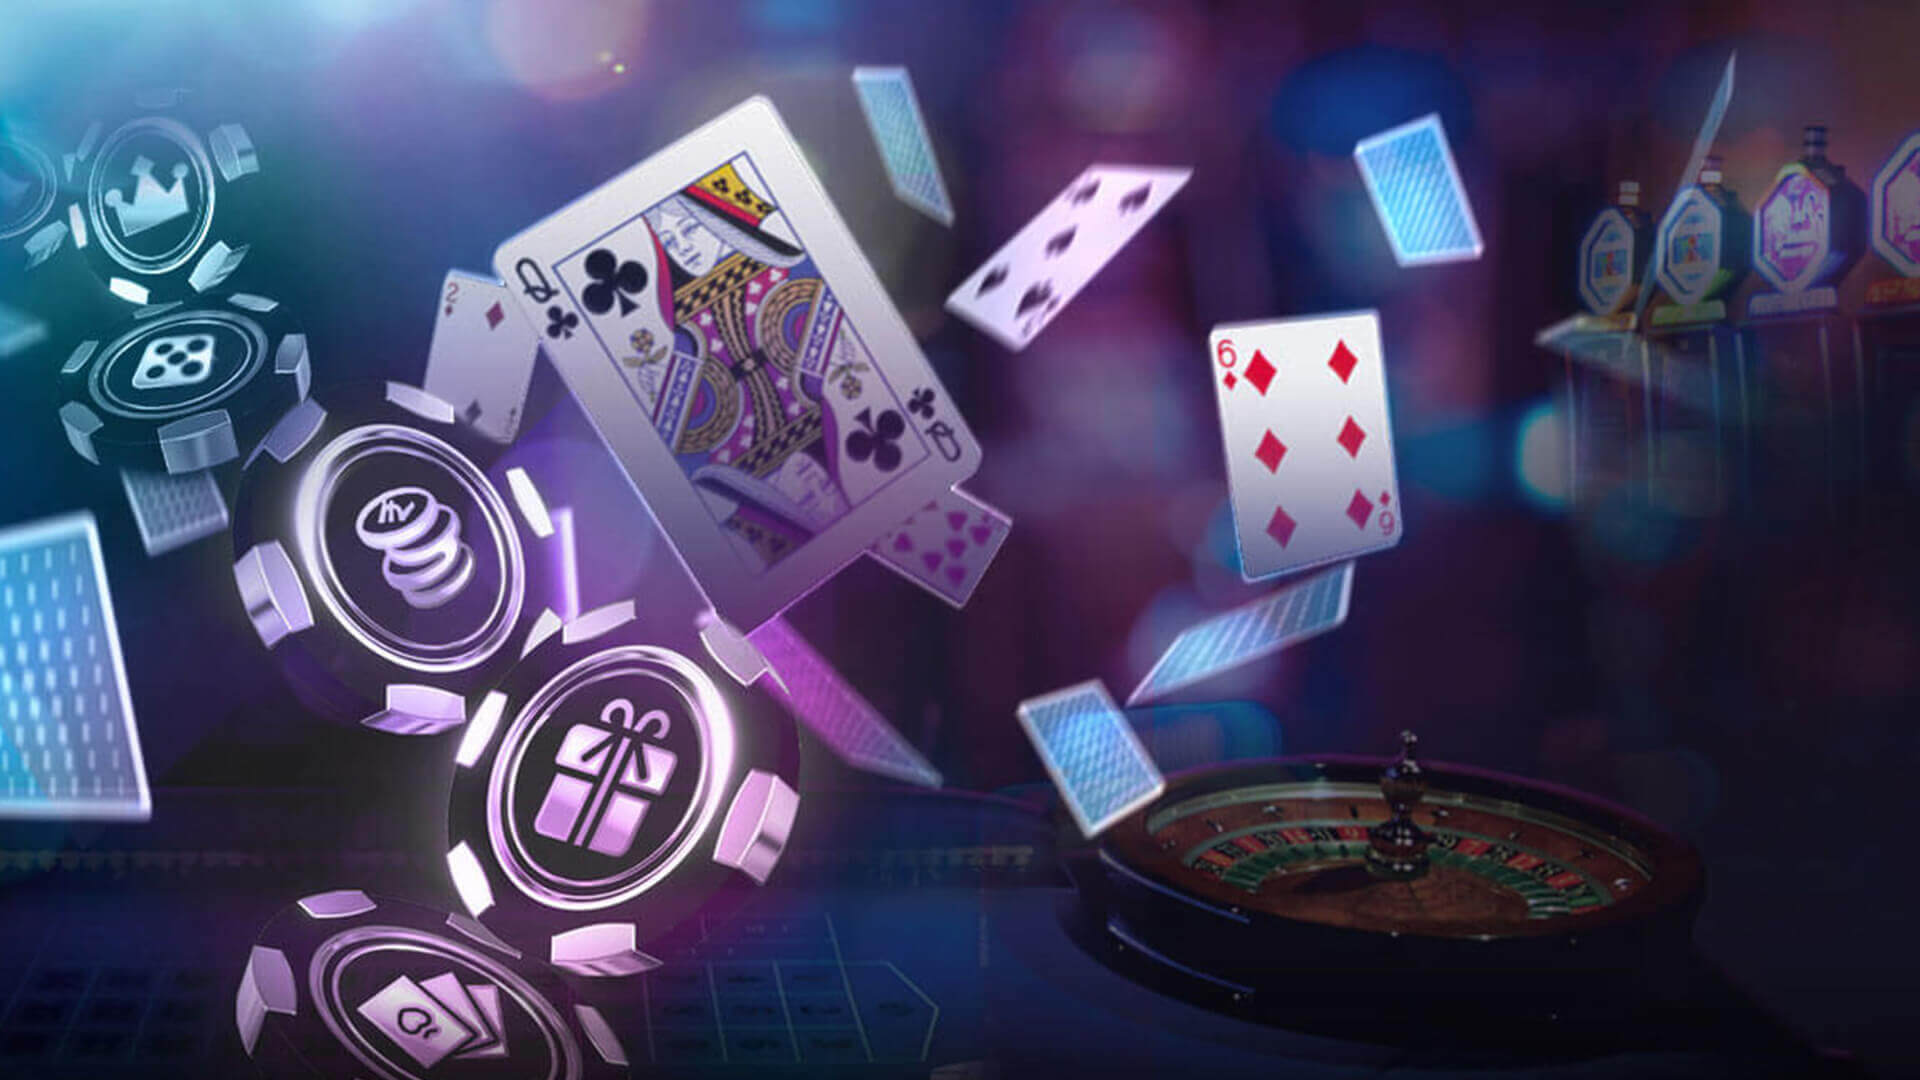 Some tips to become an expert in poker game